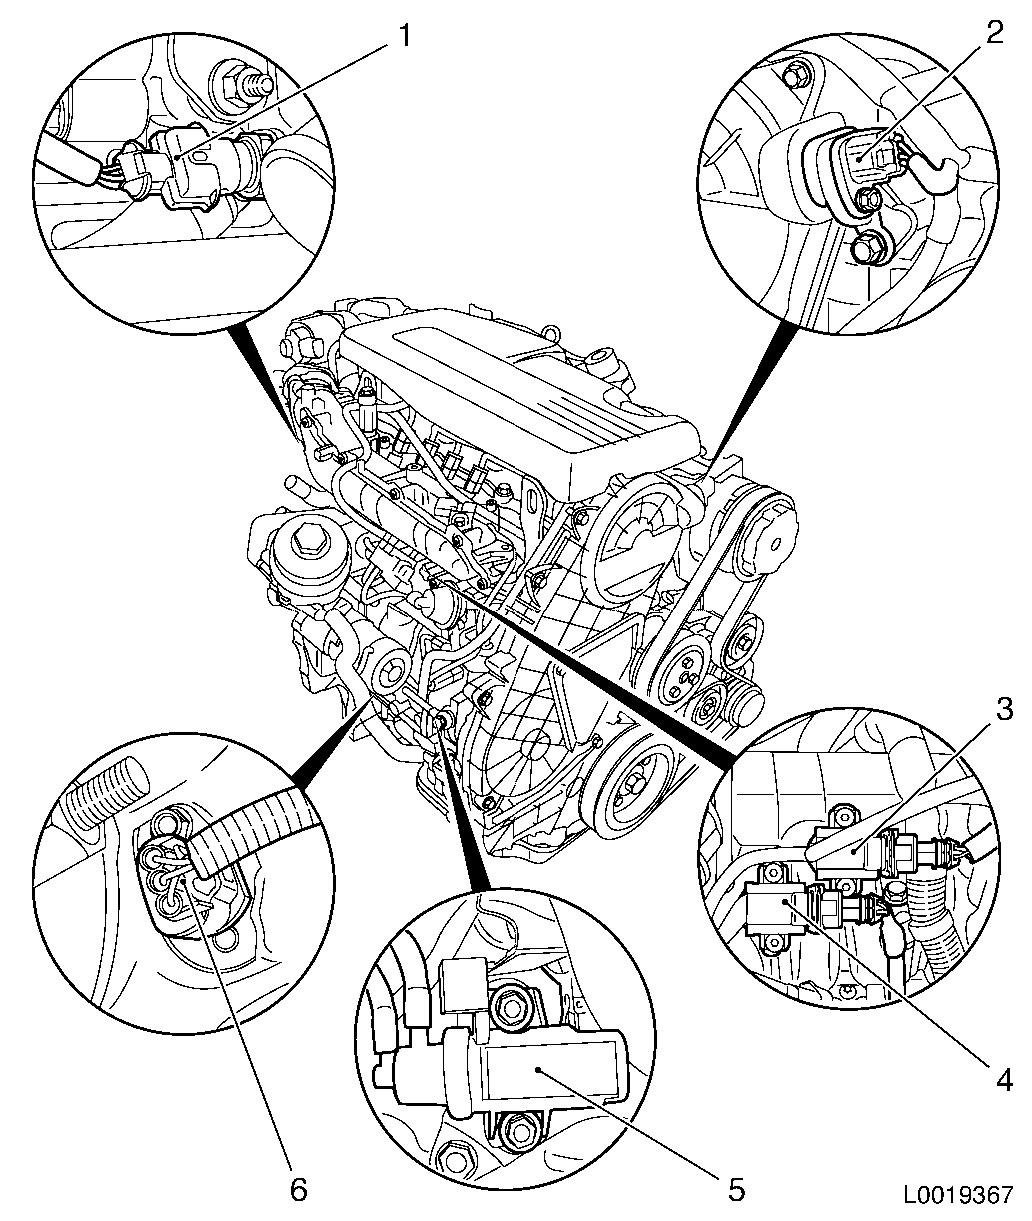 Vauxhall Workshop Manuals Gt Astra H Gt J Engine And Engine Aggregates Gt Dohcsel Engine